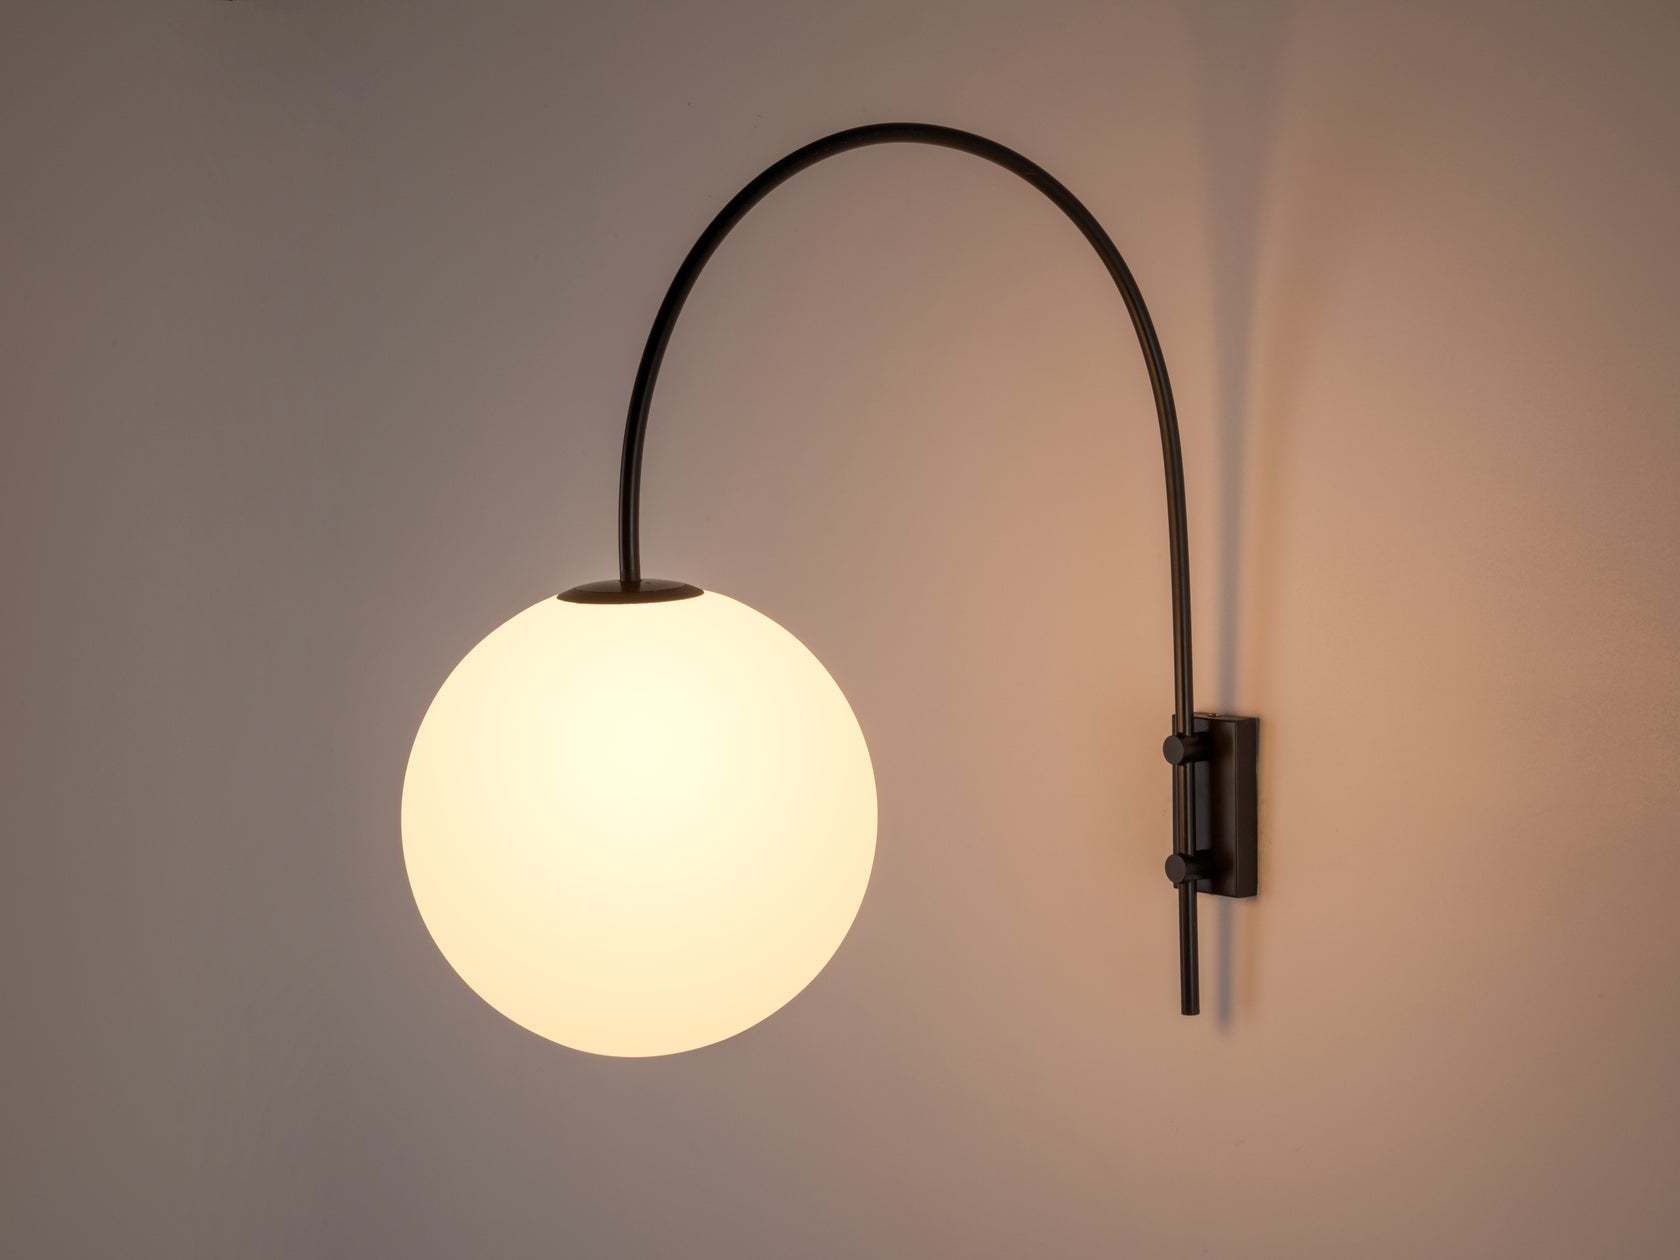 Curve wall light grey | dark | houseof.com